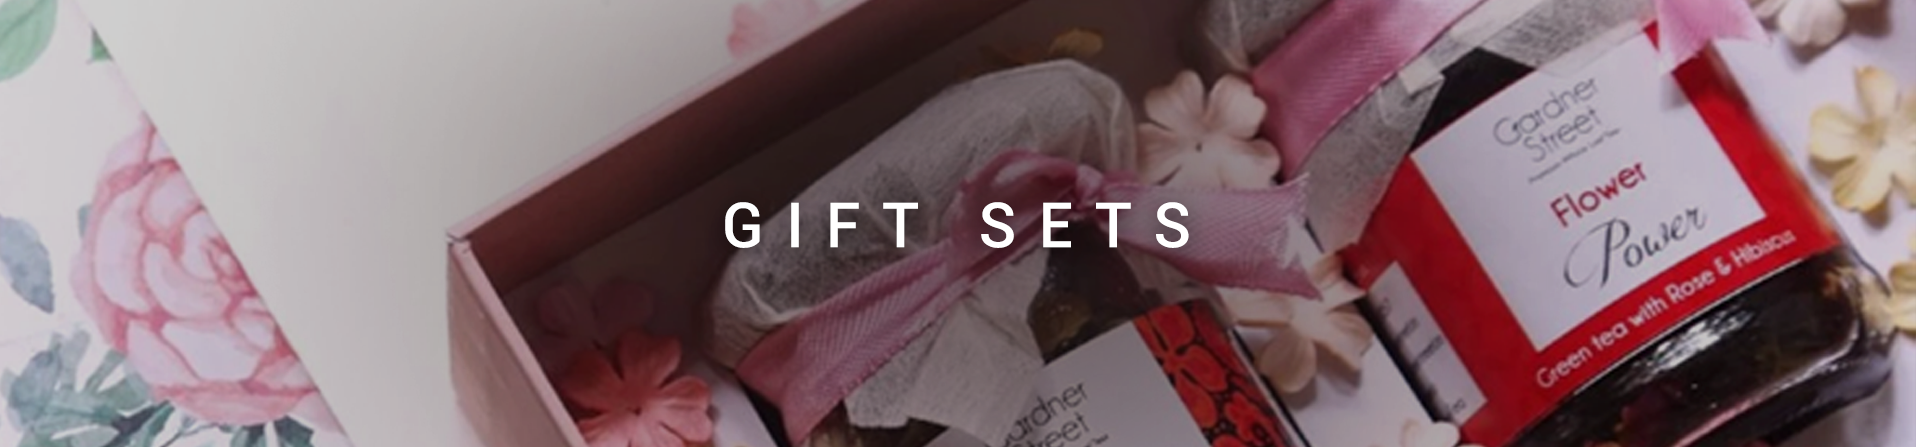 - Home - Gift Sets -